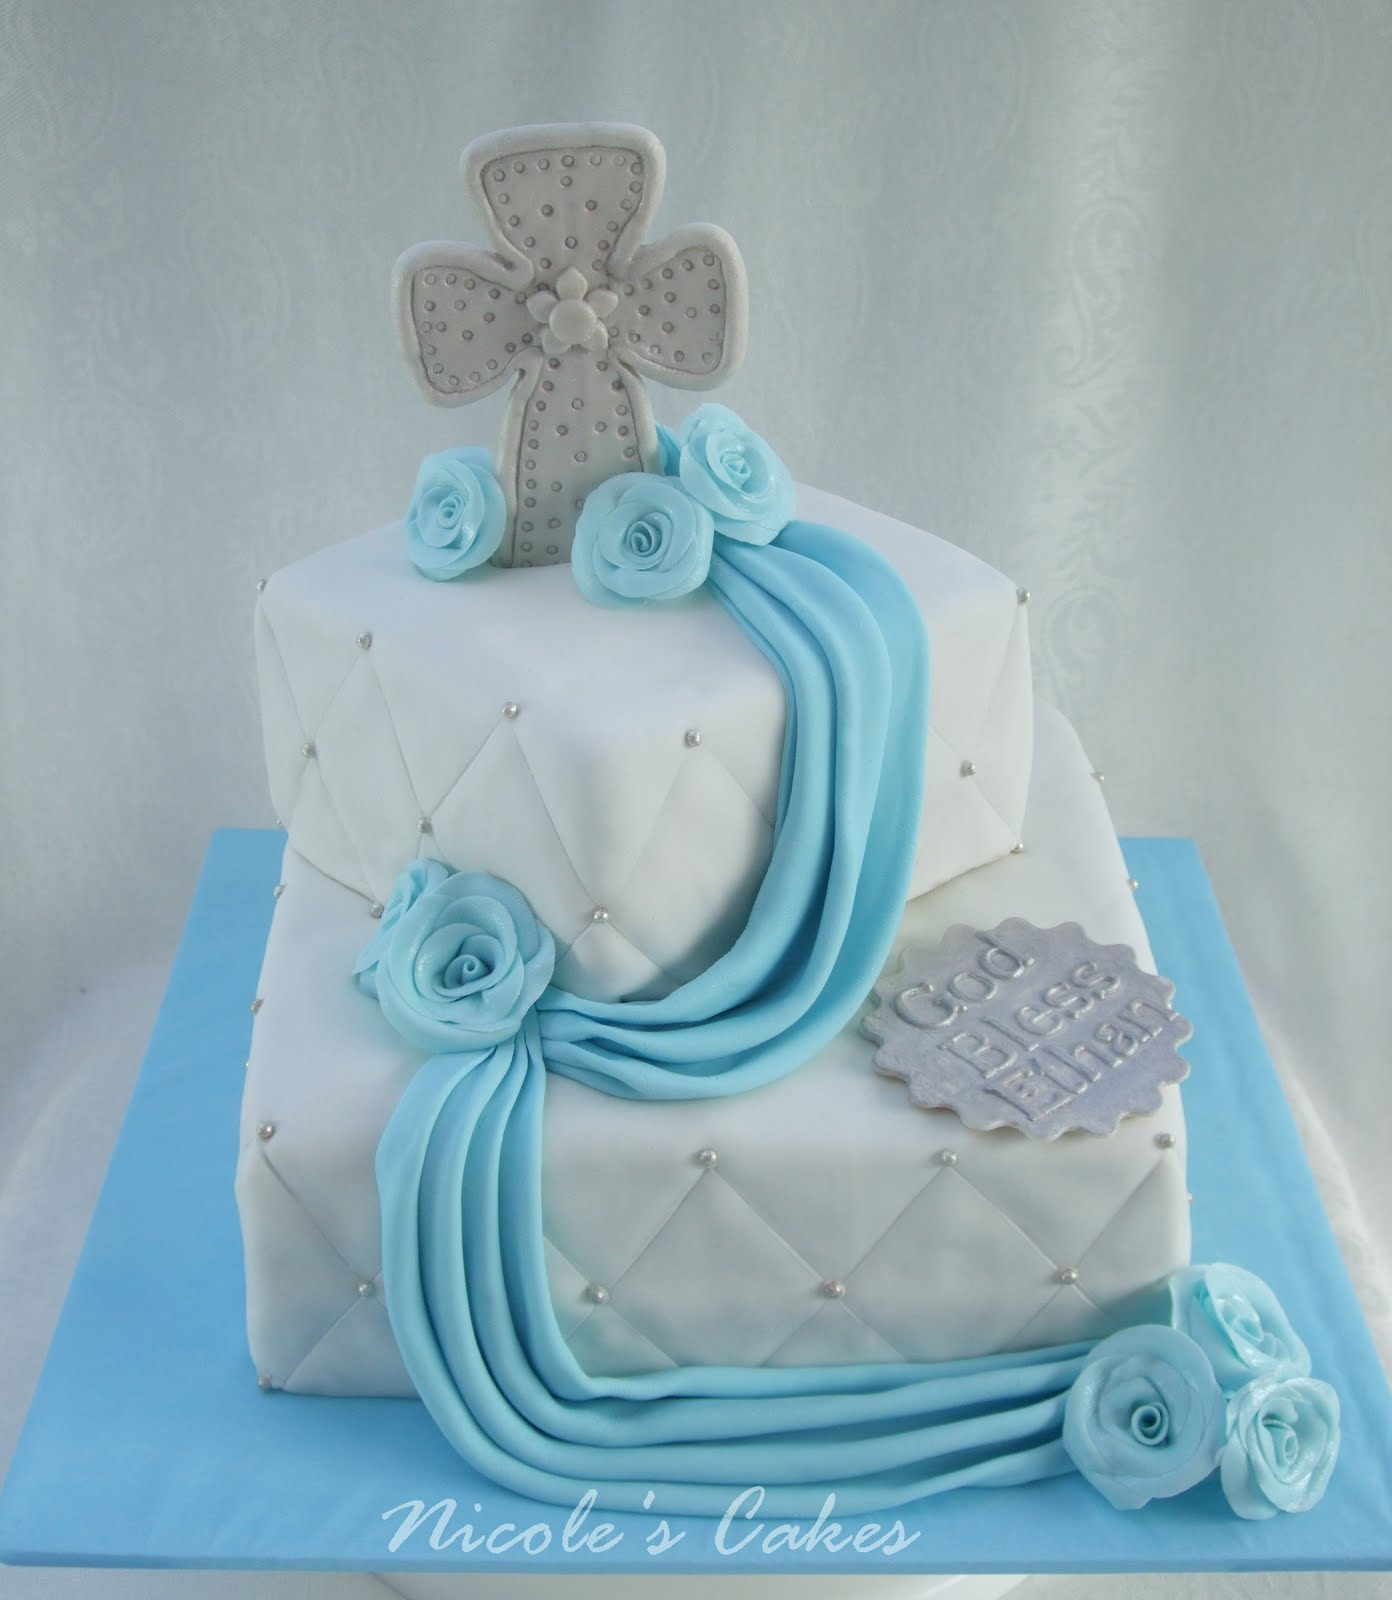 On Birthday Cakes: Christening/Baptism Cake for a Baby Boy